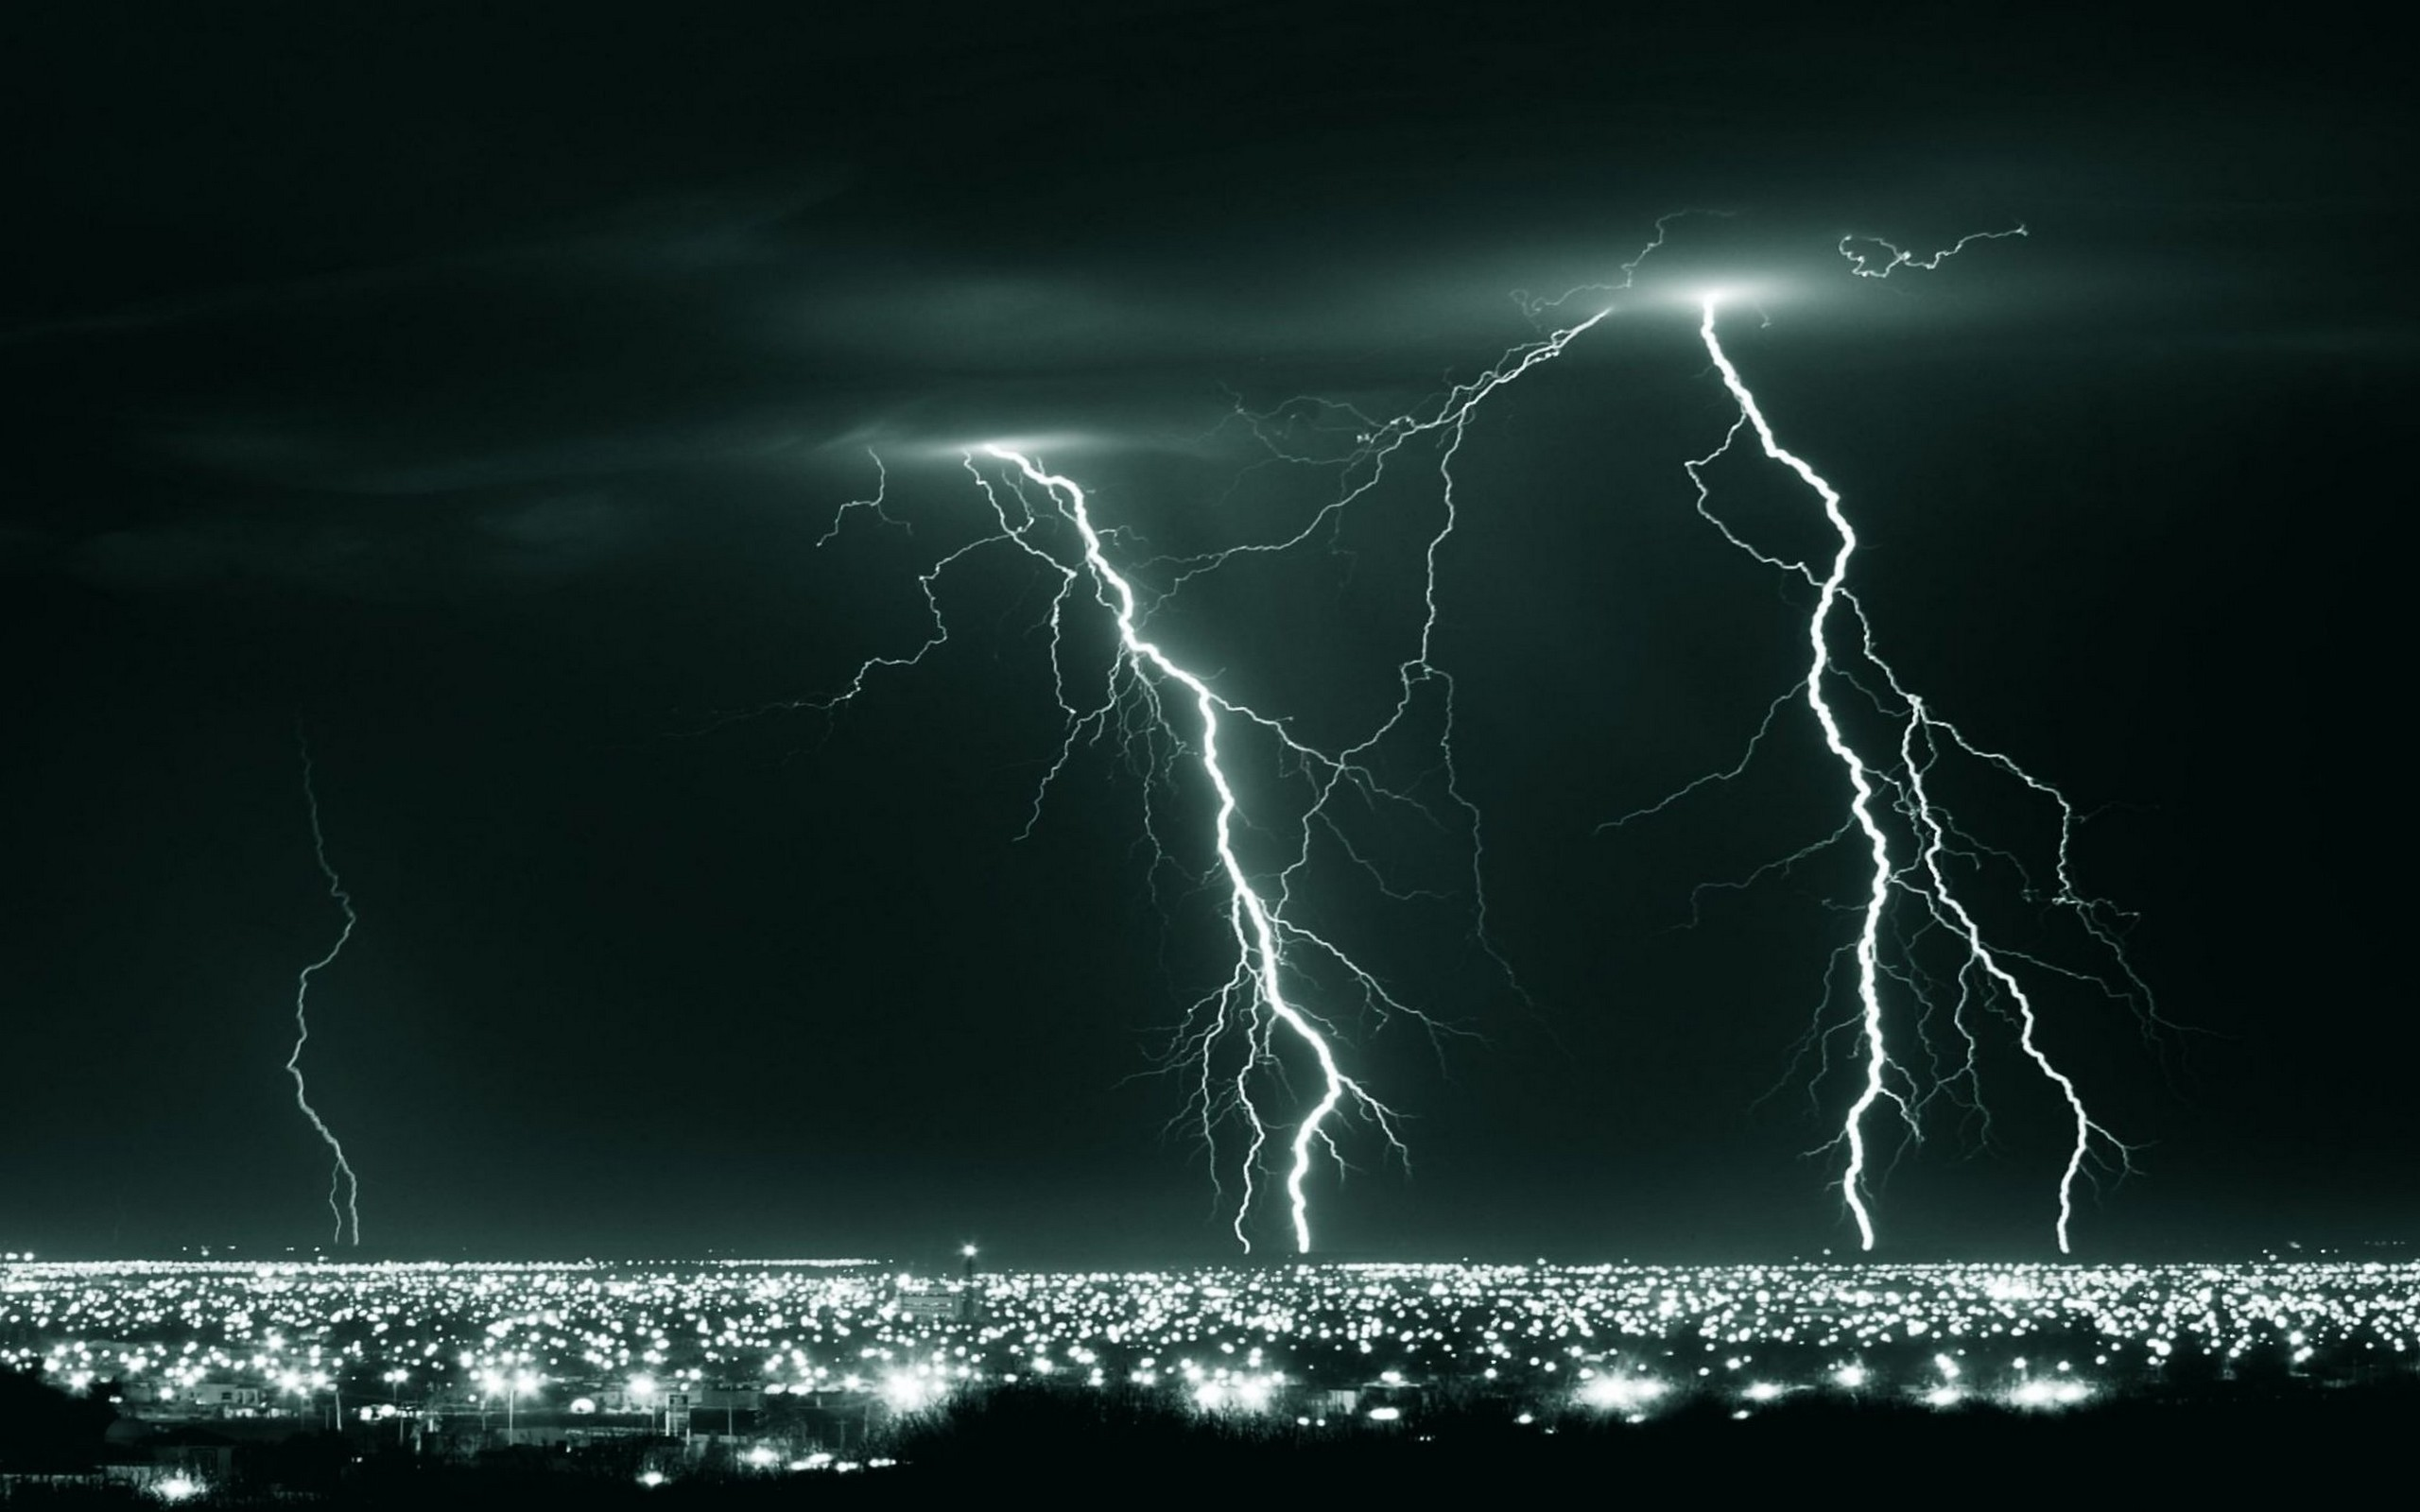 Desktop Lightning HD Wallpapers 2560x1600